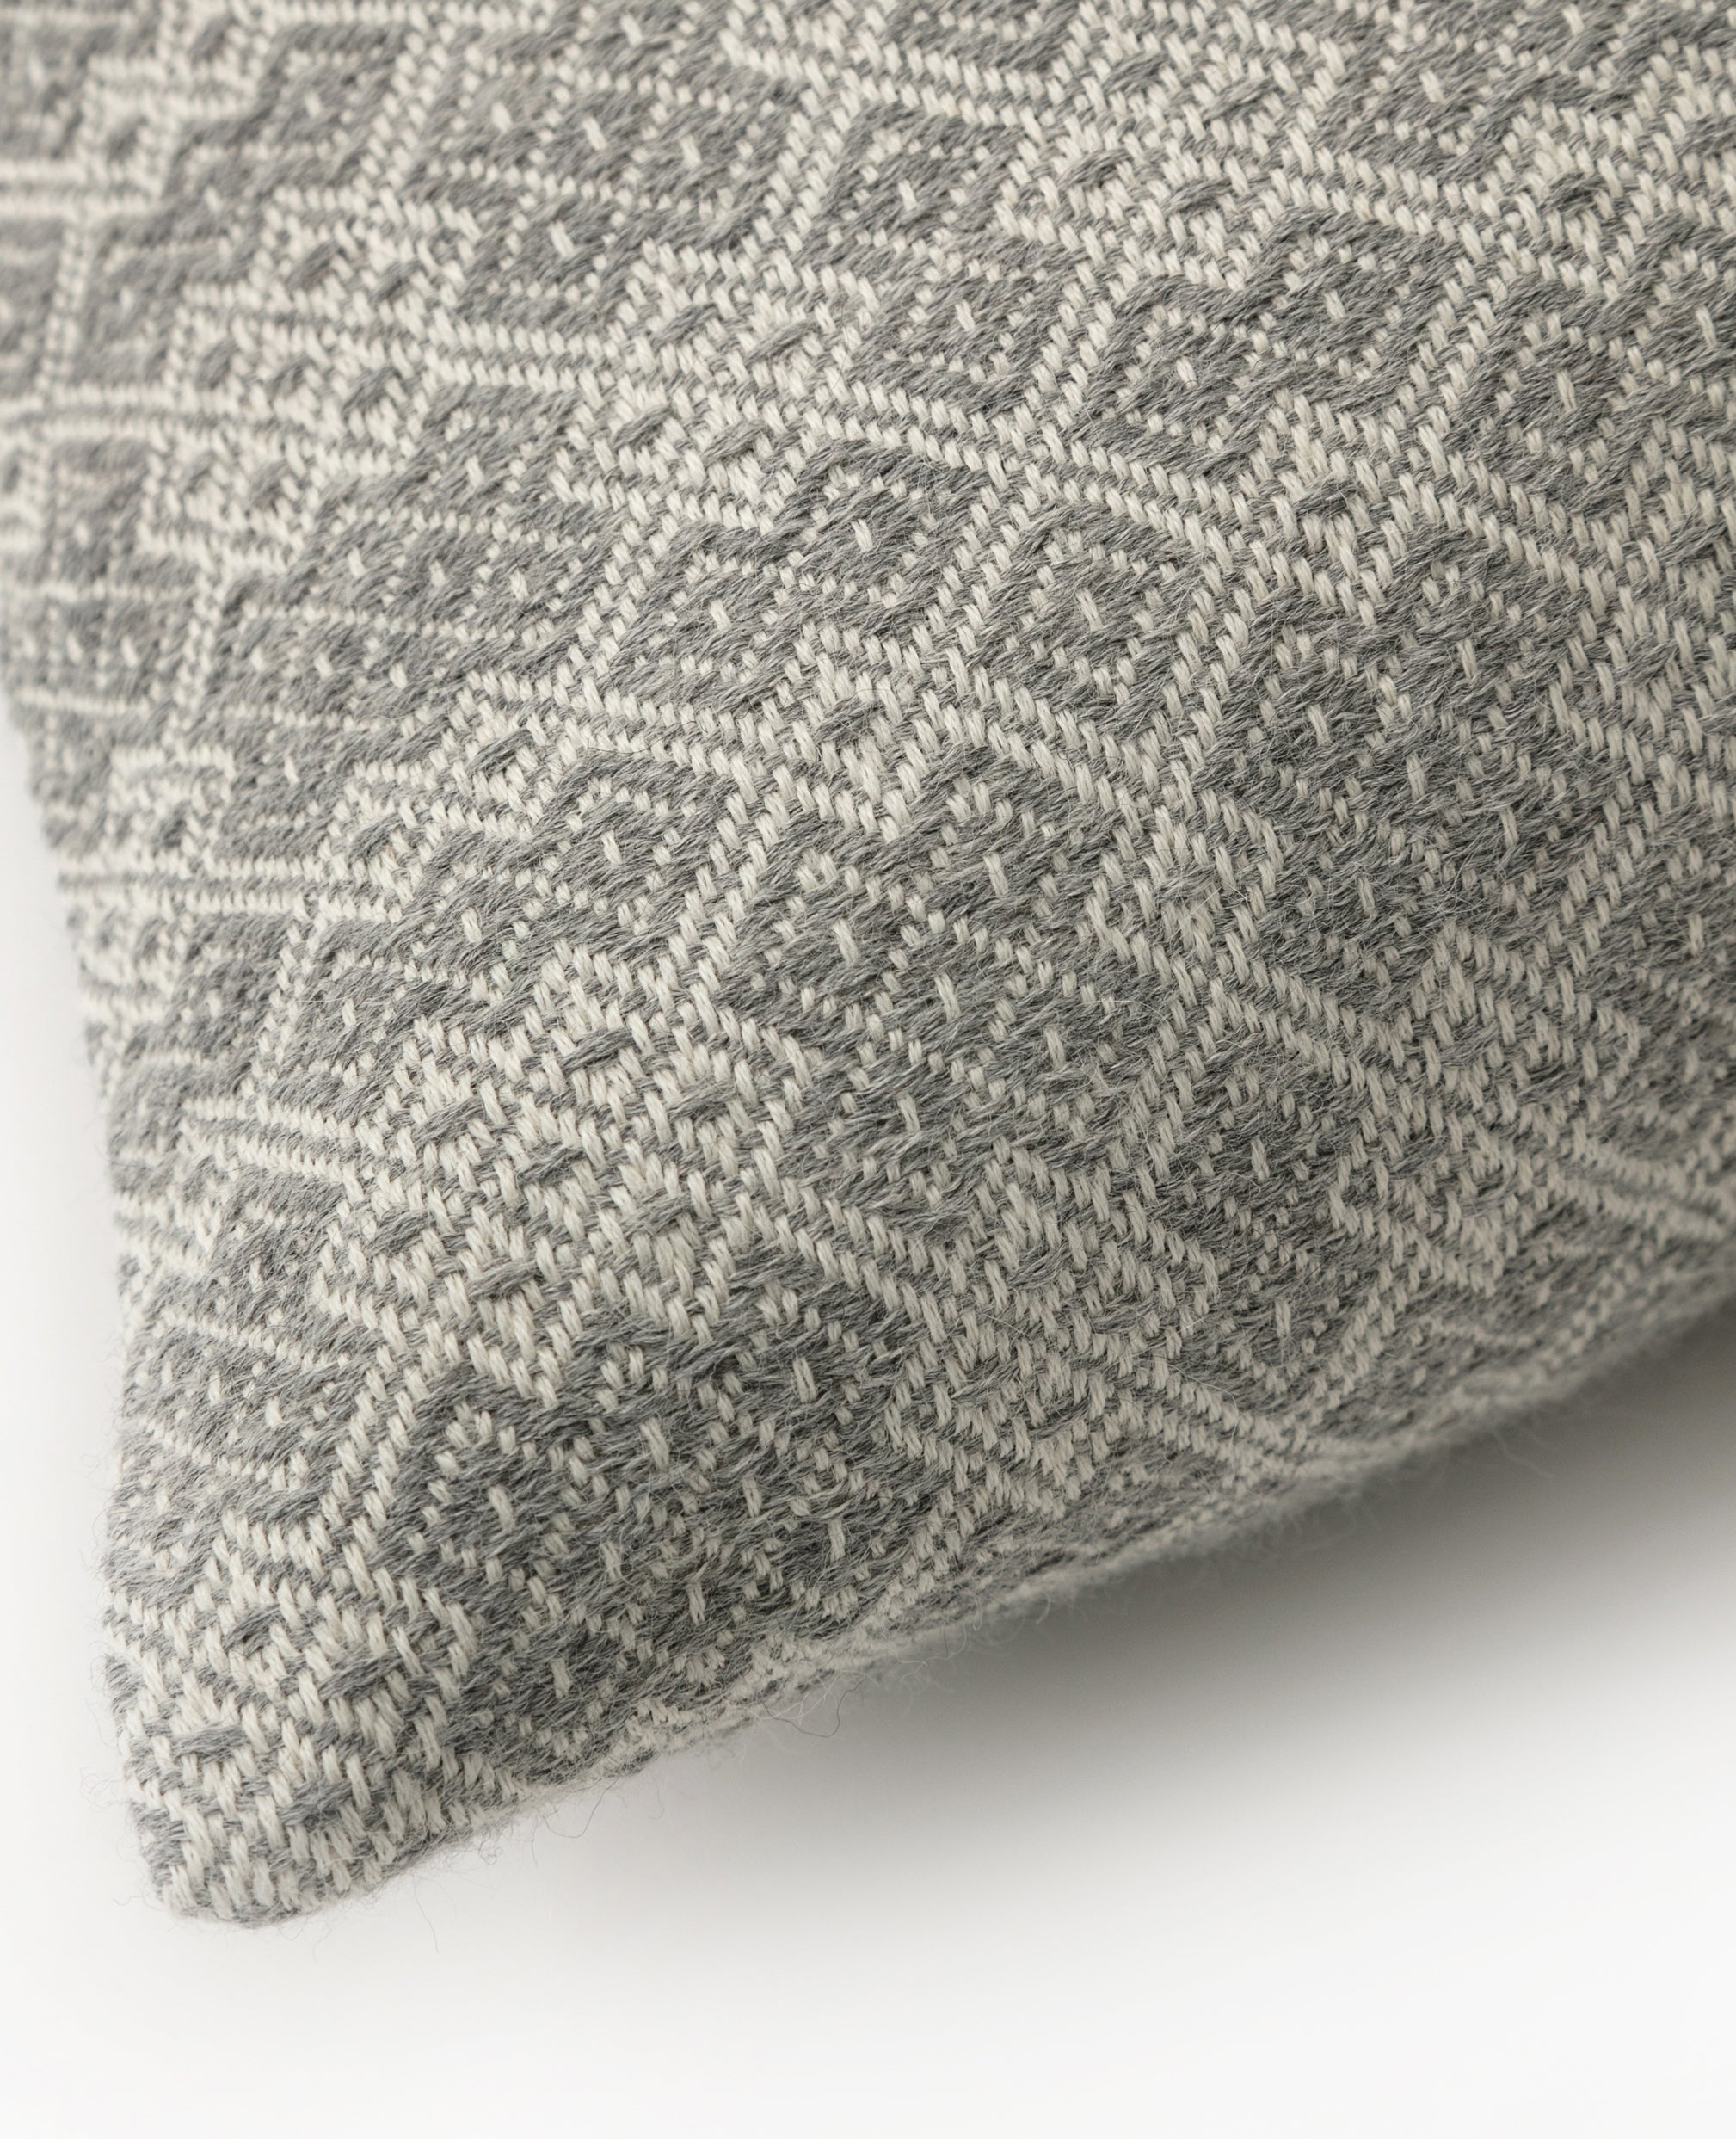 Aro overshot cushion detail